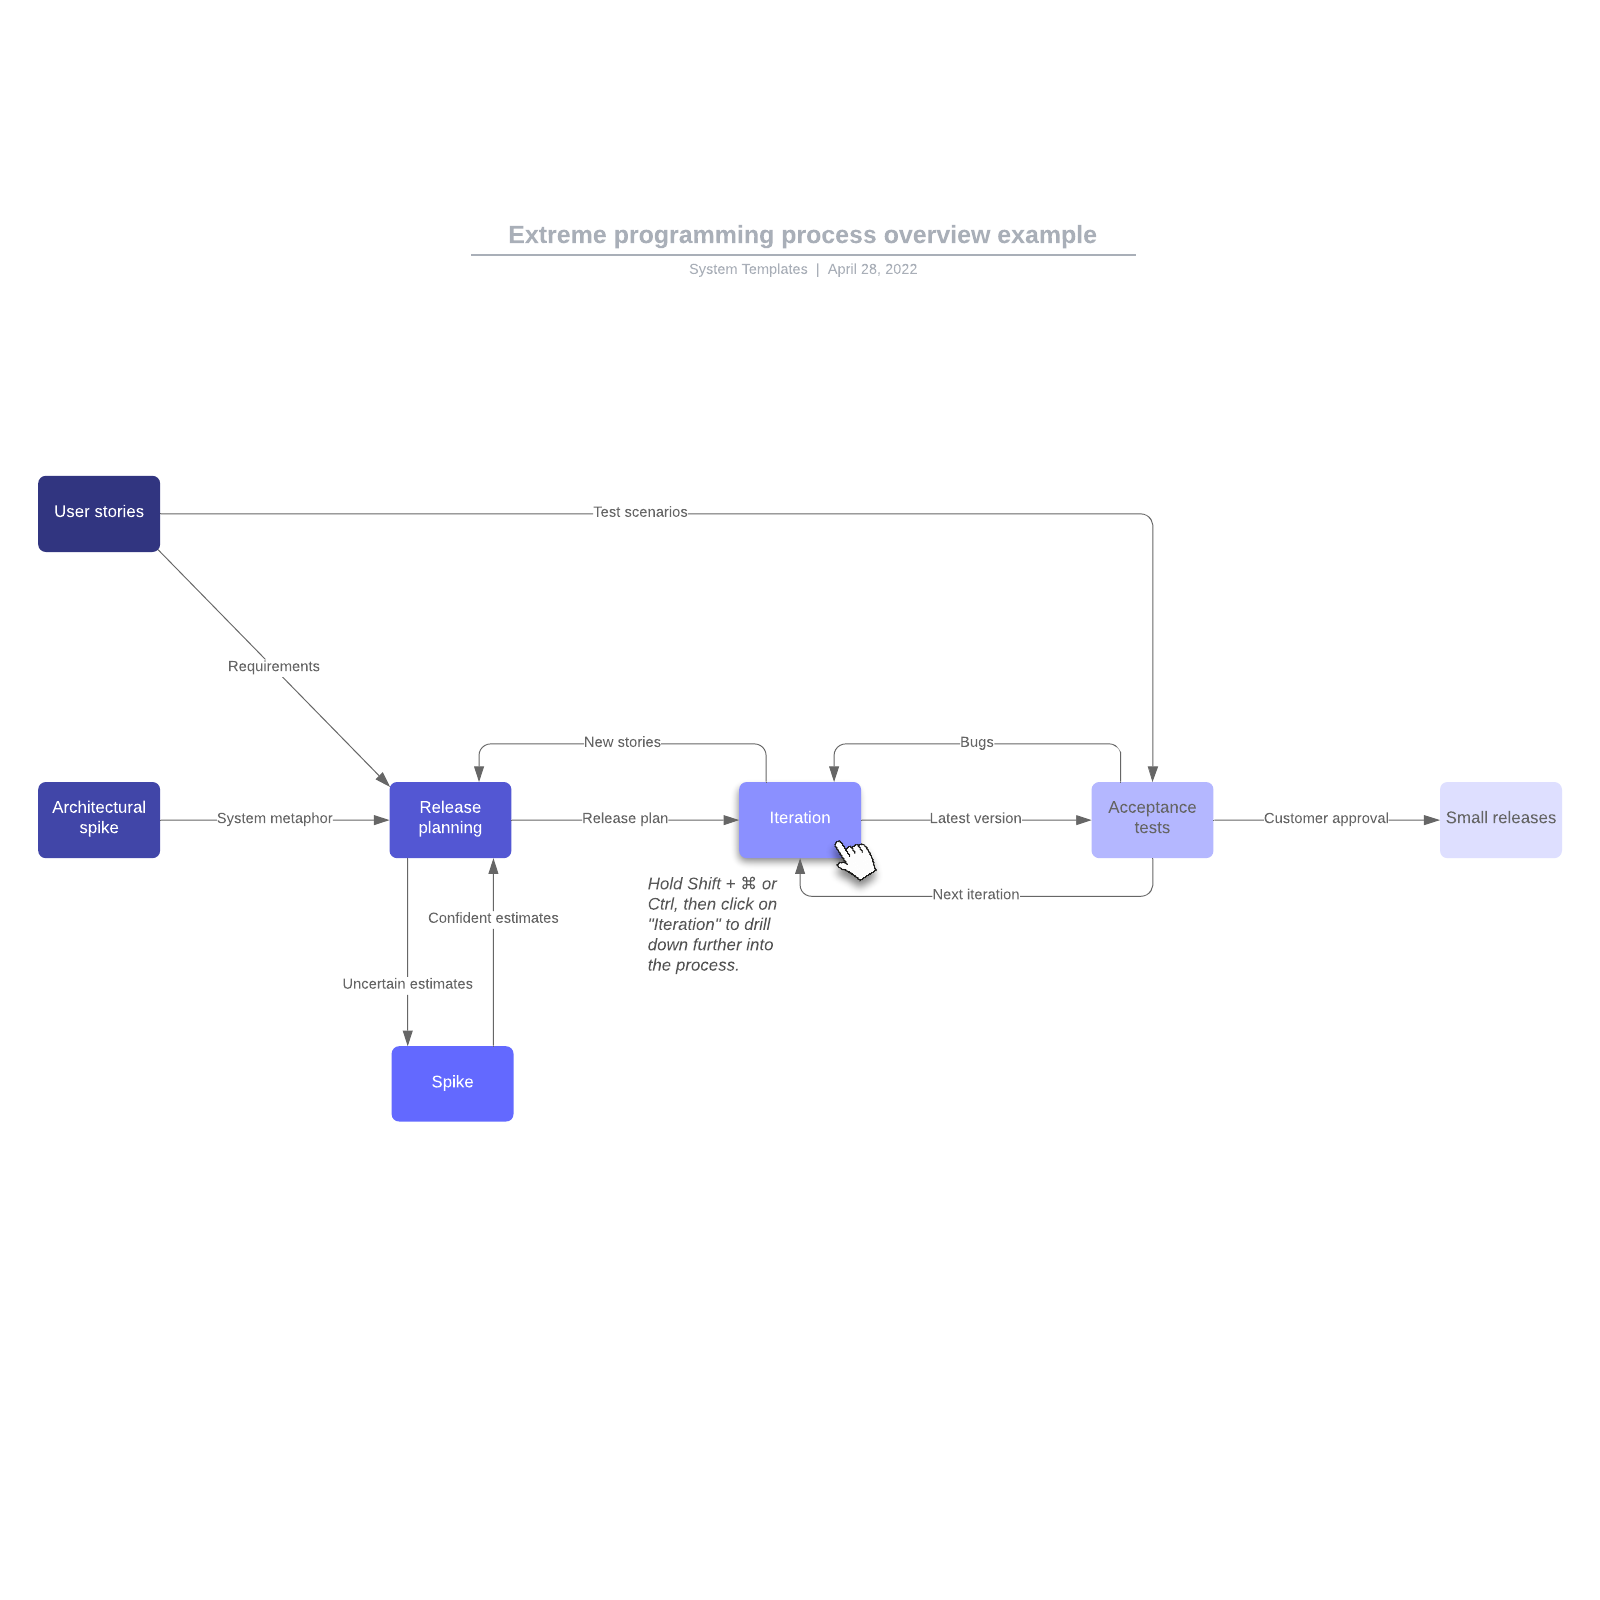 Extreme programming process overview example